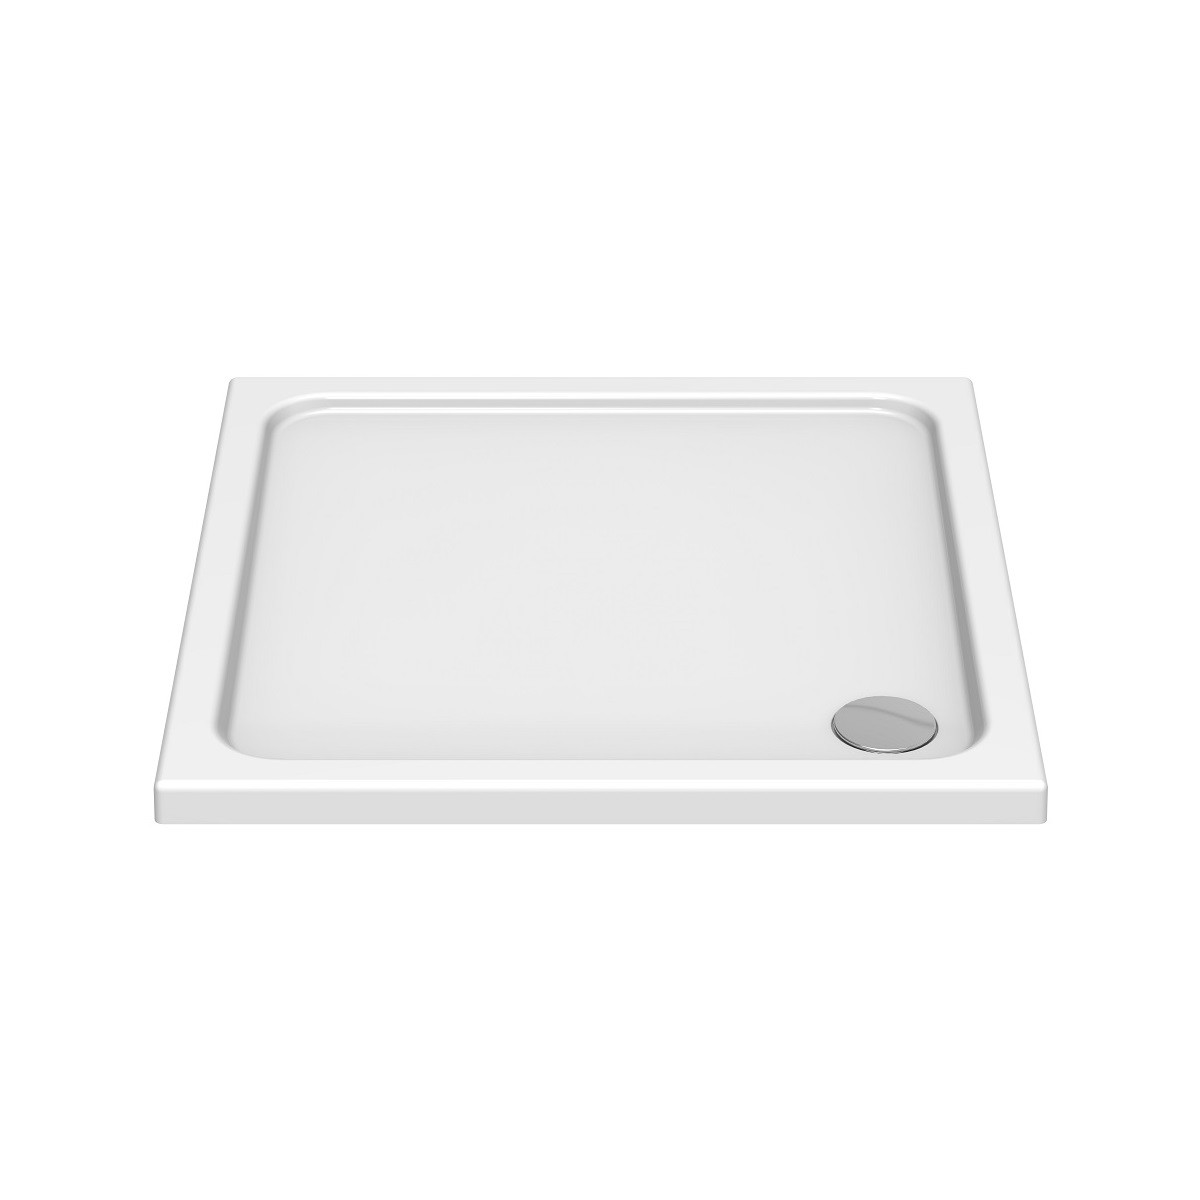 Kudos K Stone Shower Trays